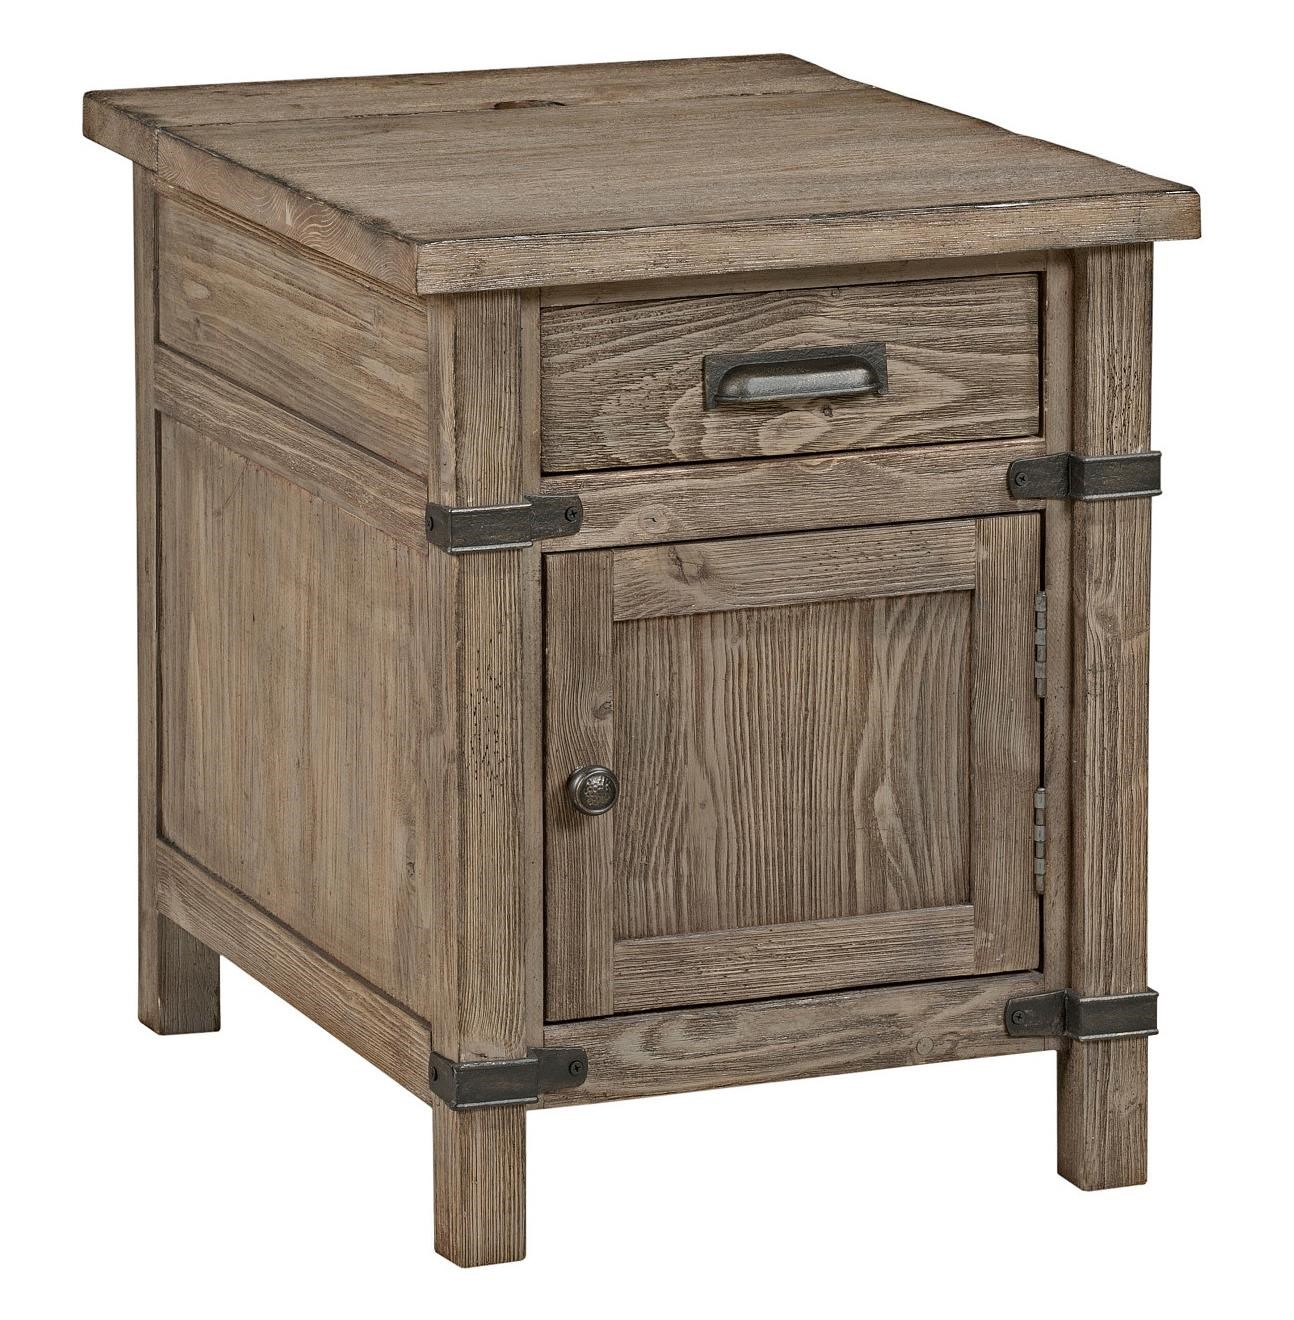 Rustic Wood End Table Foundry Rustic Weathered Gray Chairside Table With Power Outlet By Kincaid Furniture At Becker Furniture World